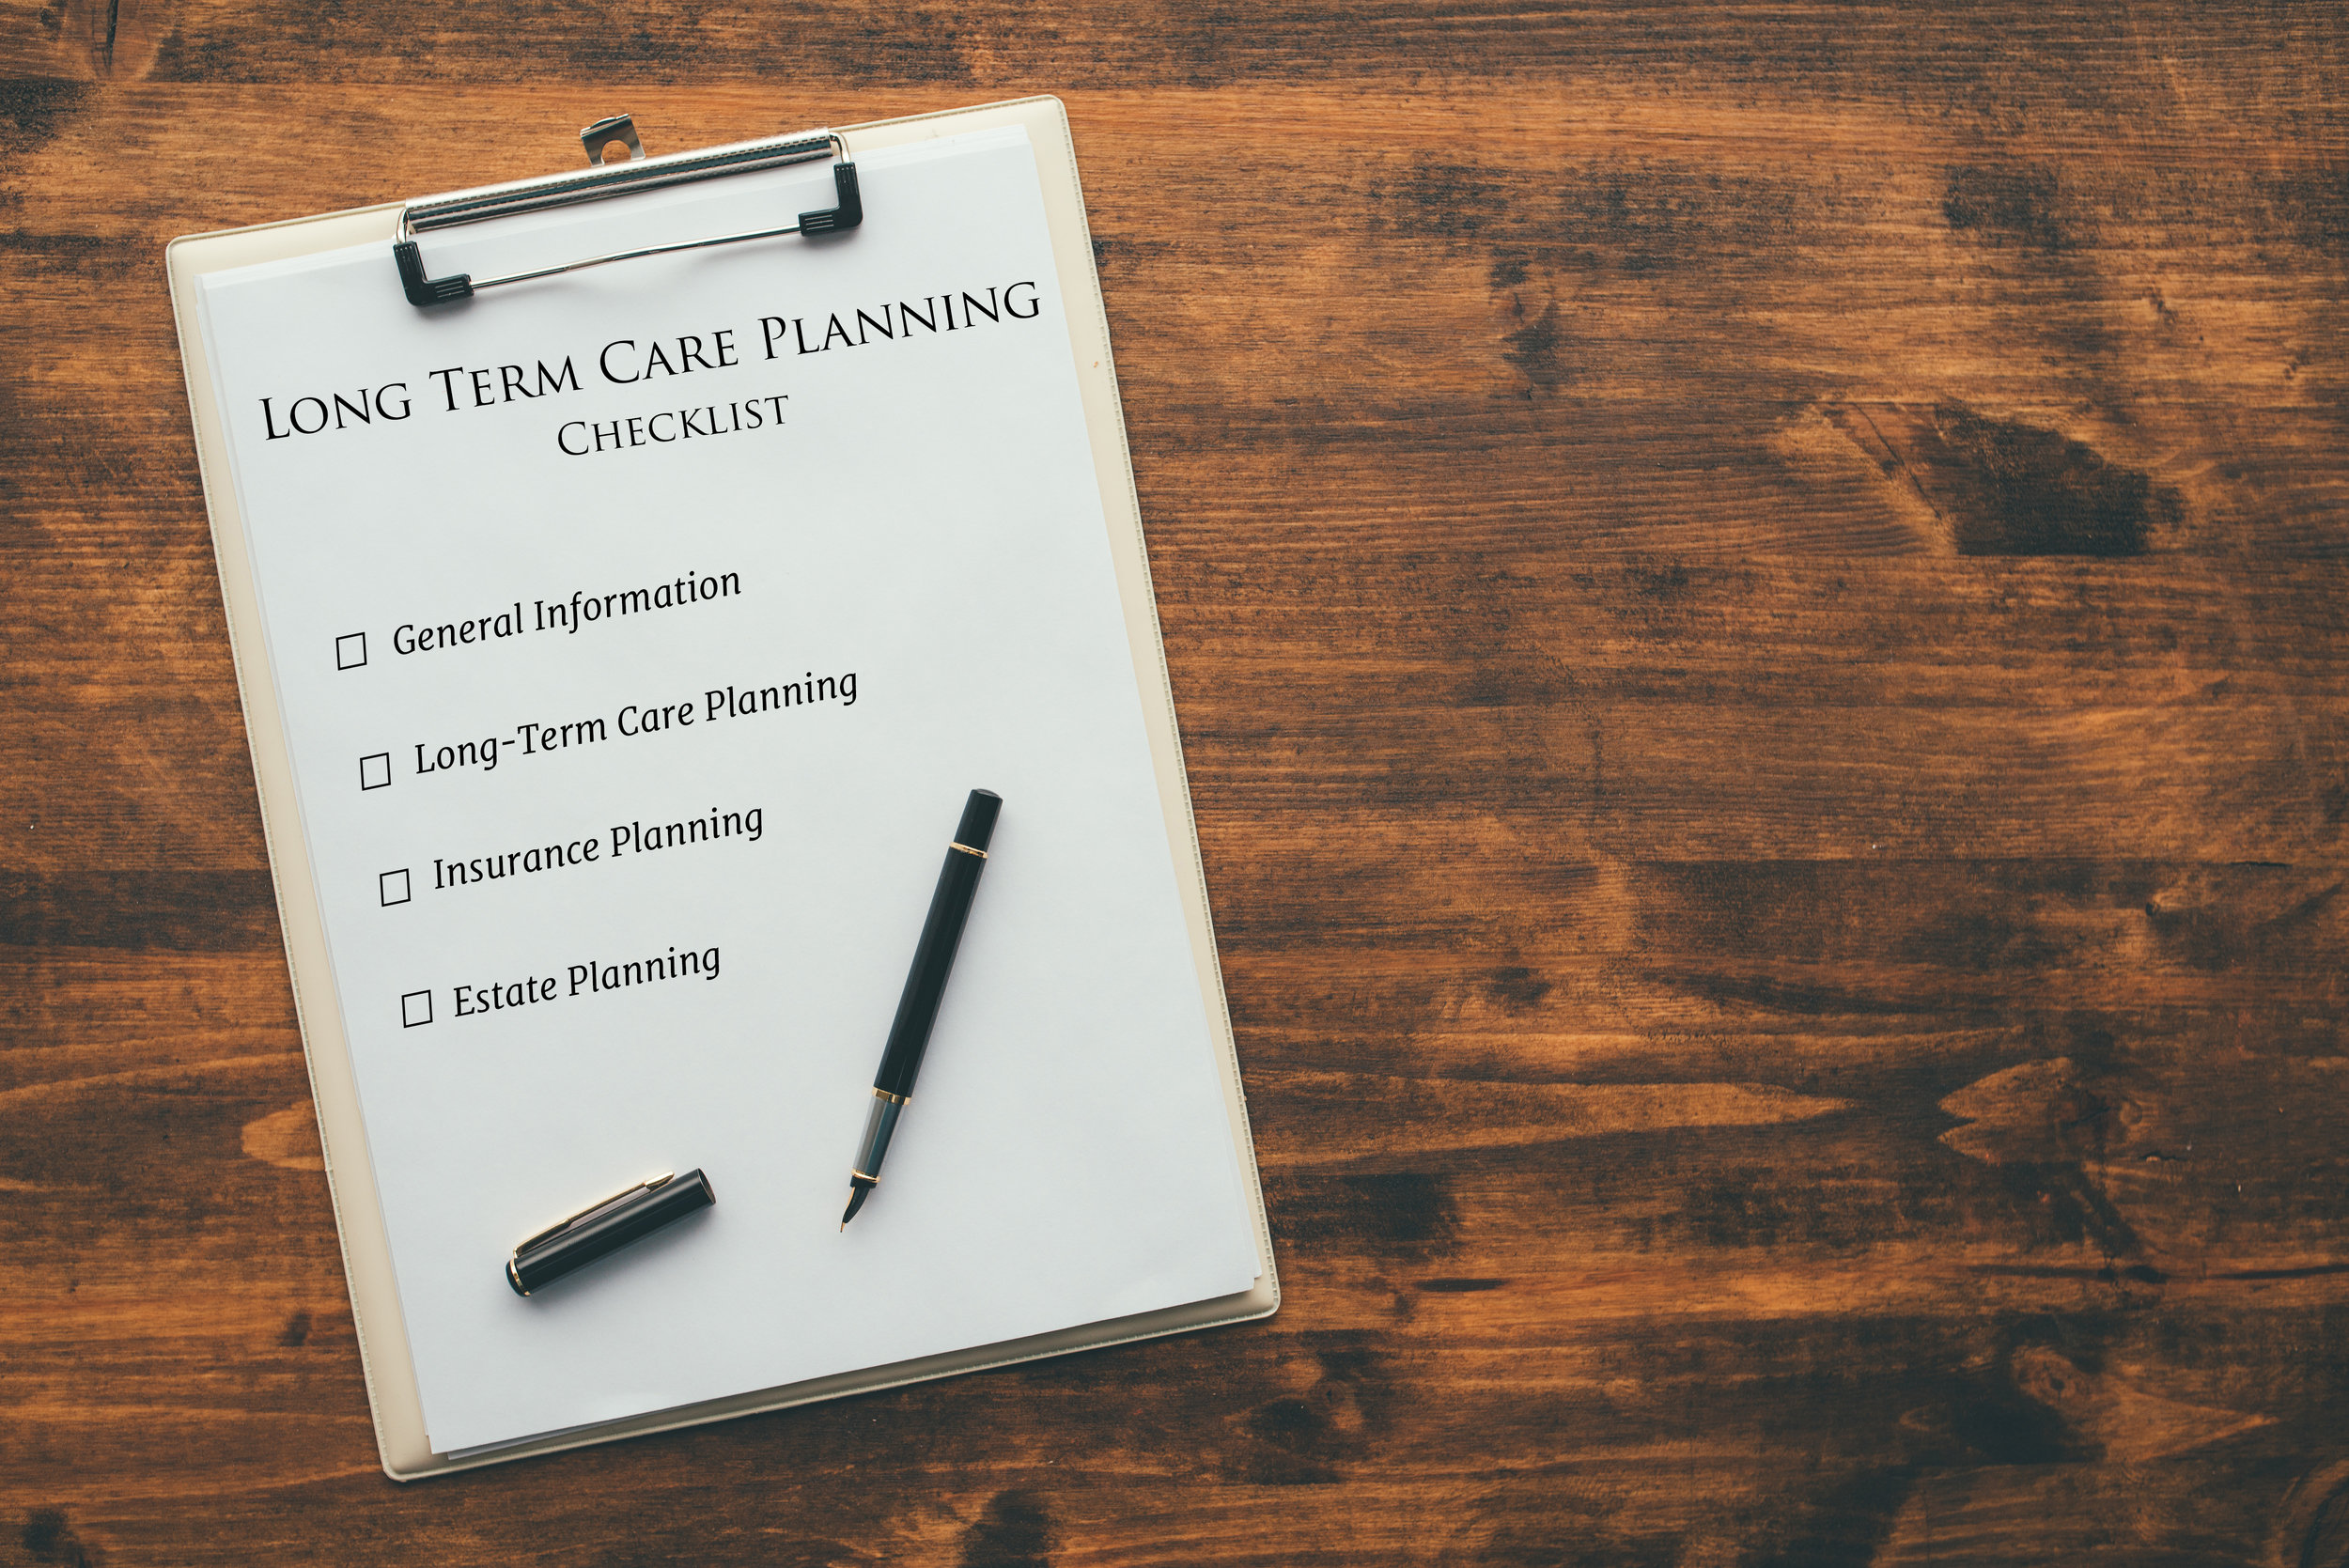 Strittmatter Wealth Management Group Fort Worth Texas Wealth Management Firm Financial Education Resources Long Term Care Planning Checklist